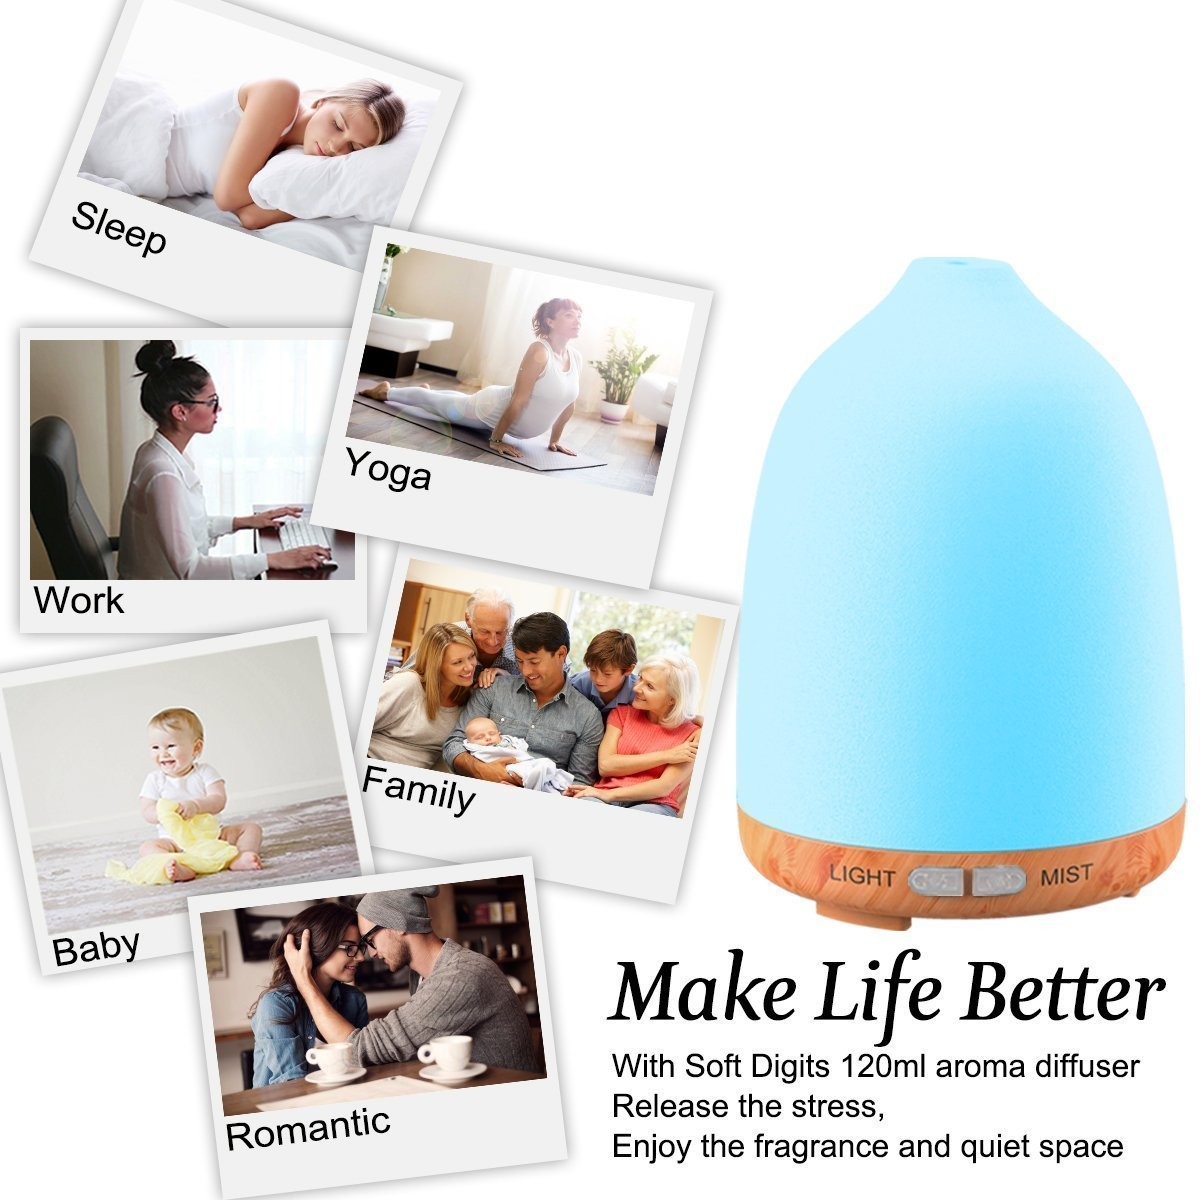 Essential Oil Diffuser, Soft Digits 120ml Wood Grain Ultrasonic Aroma Diffuser Aromatherapy Diffuser, Cool Mist Humidifier with Auto Shut Off, 7 LED Colors Changing and Adjustable Mist Mode - 2 Pack by Soft digits (Image #8)